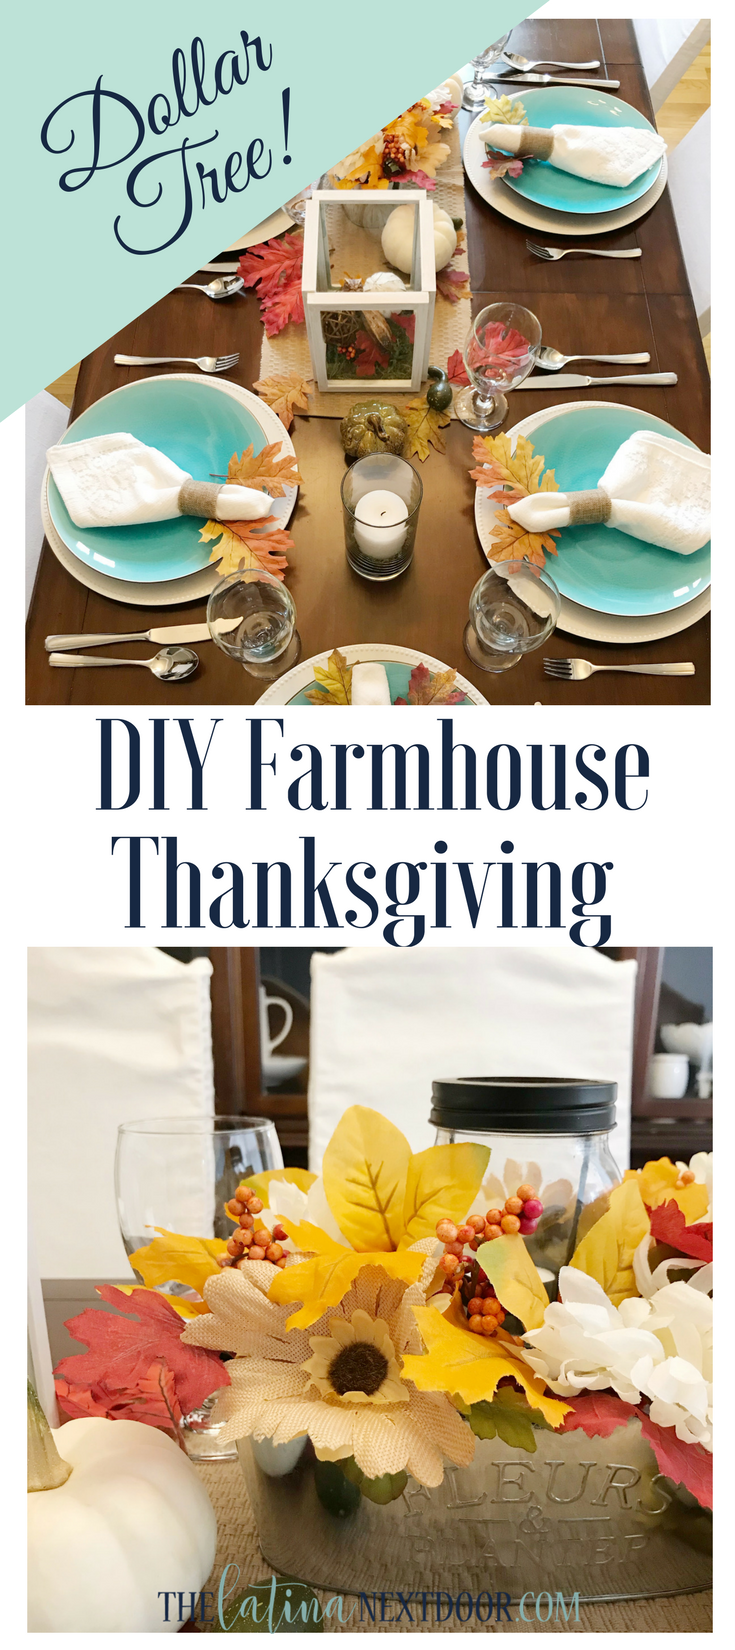 Dollart Tree Thanksgiving 1 2 DIY Farmhouse Thanksgiving Table